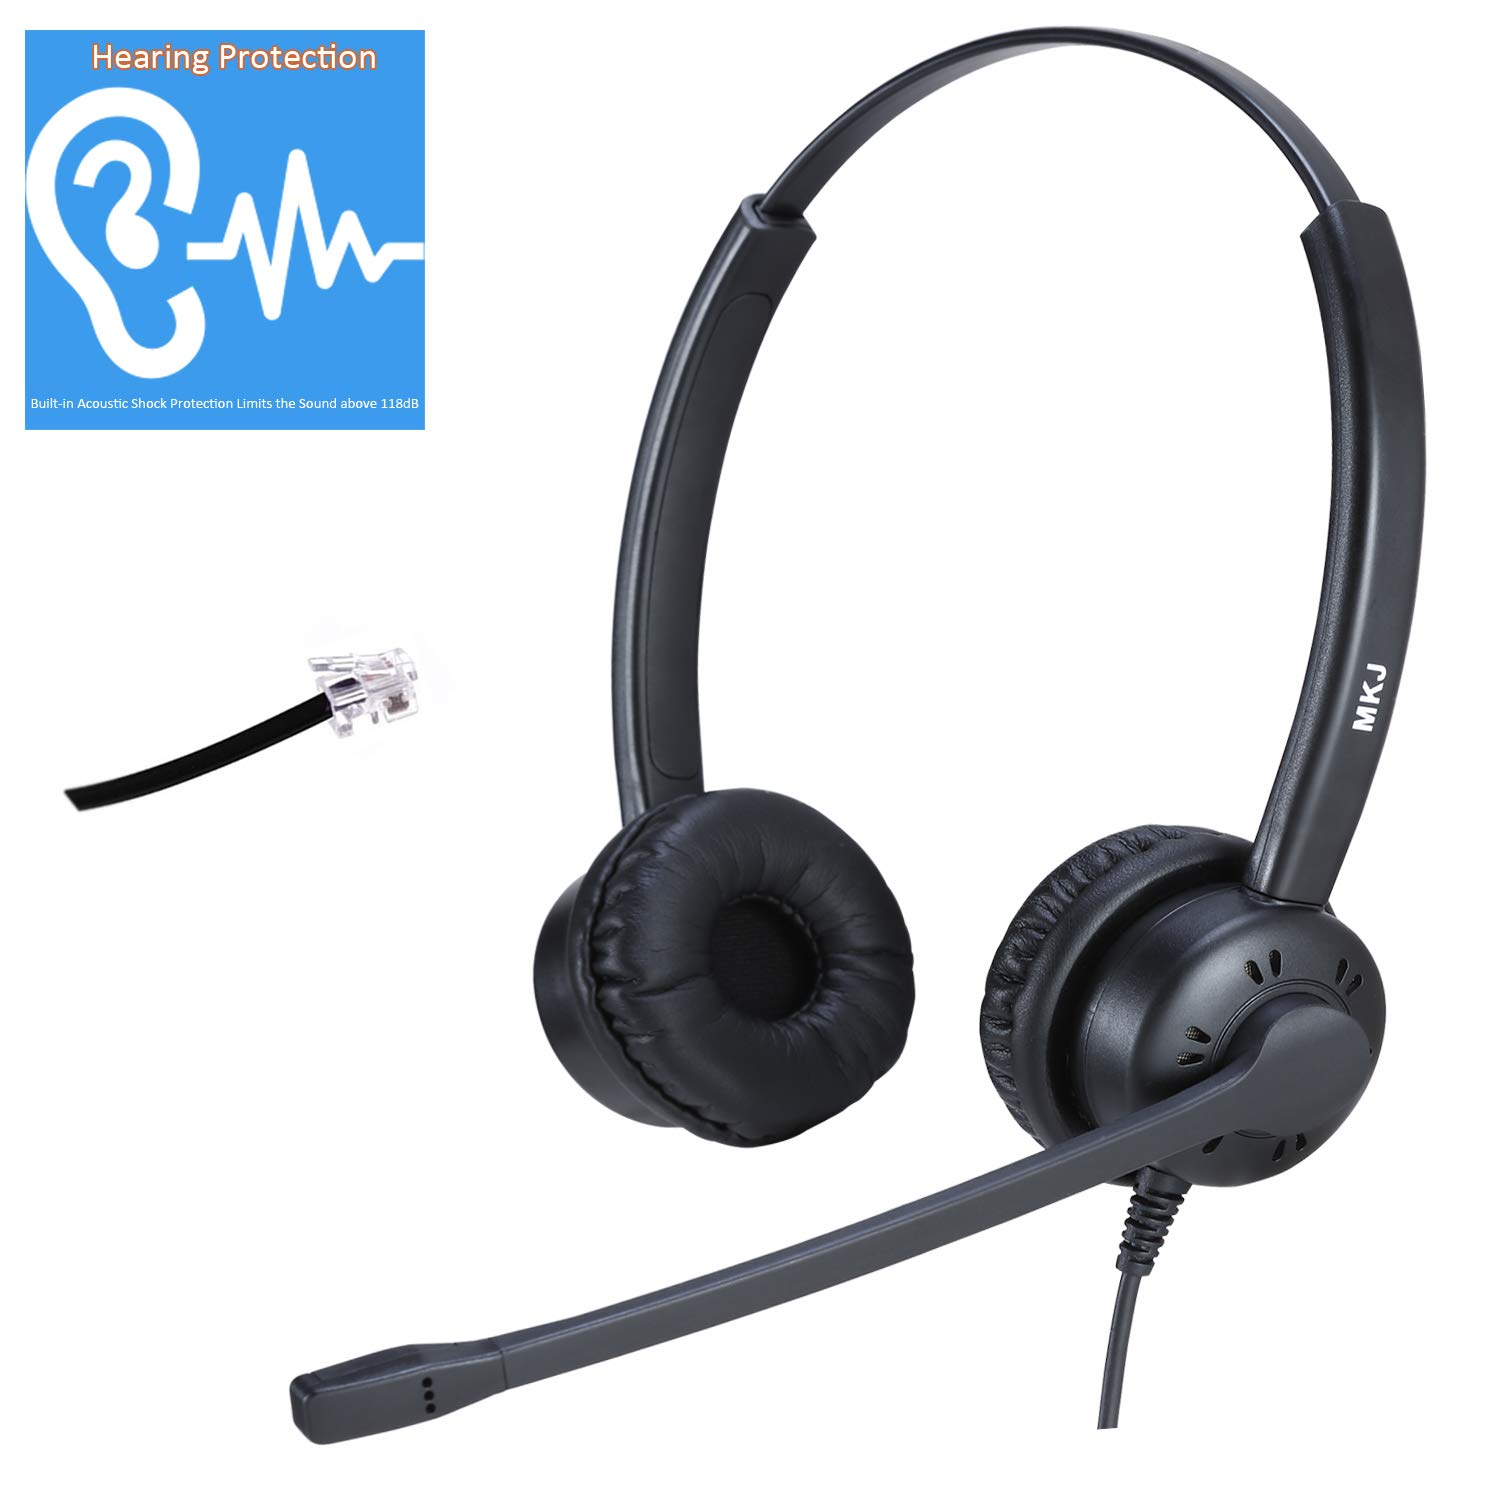 MKJ Office Headset VoIP Headset Binaural with Noise Cancelling Microphone Compatible with Panasonic, Snom, Grandstream, Yealink, Htek by MKJ